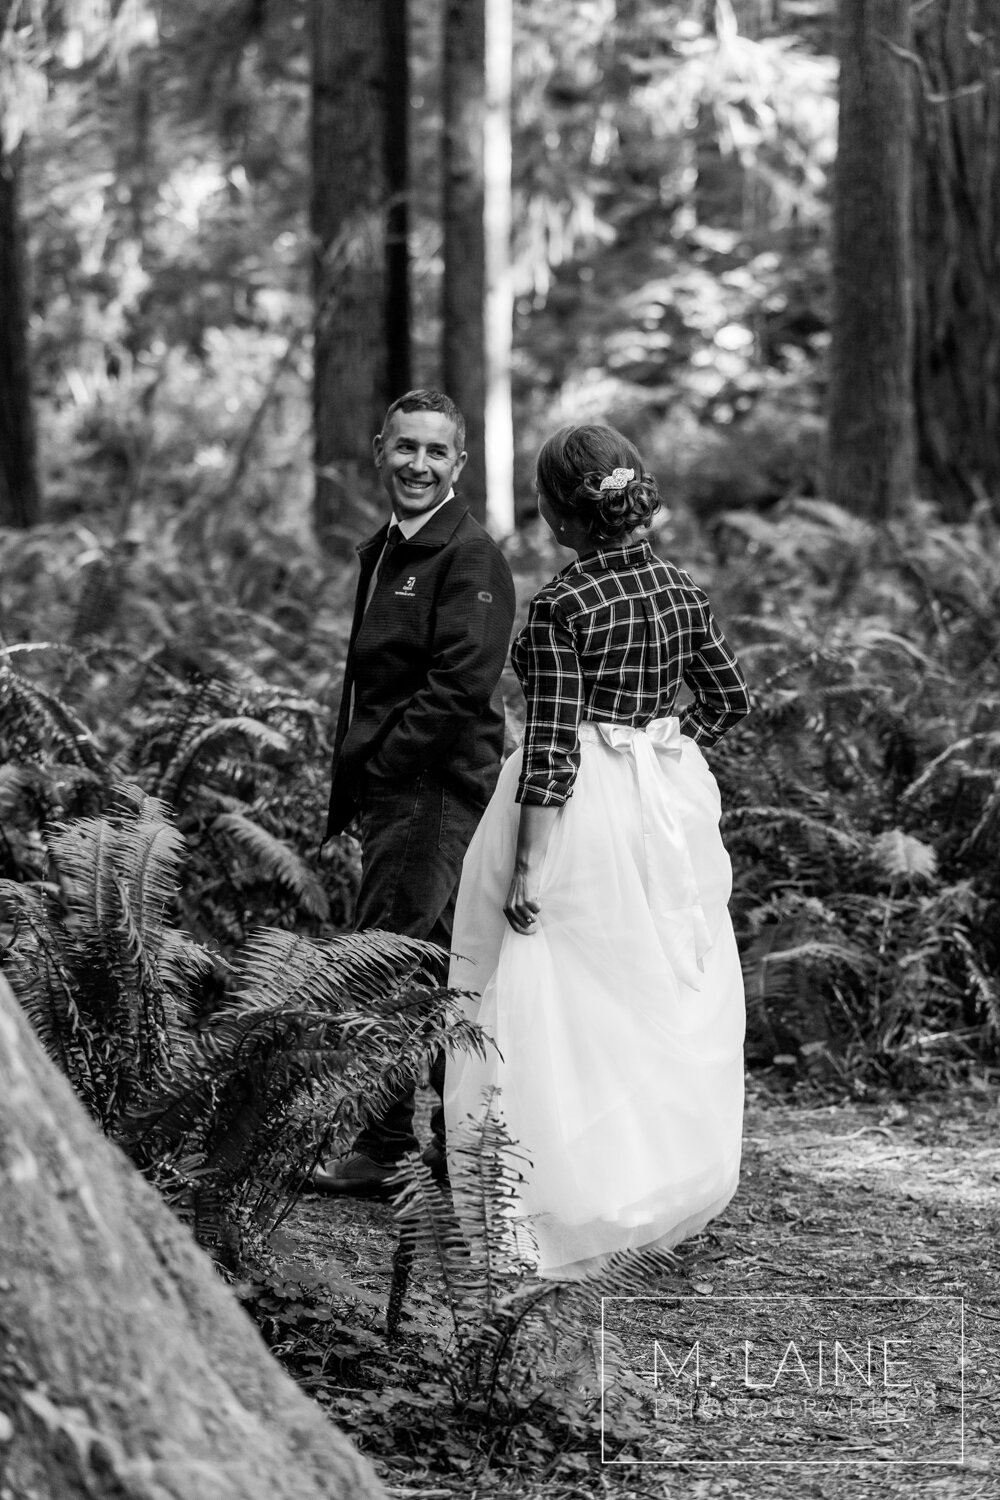 jedediah-smith-redwoods-state-park-wedding-5814.jpg